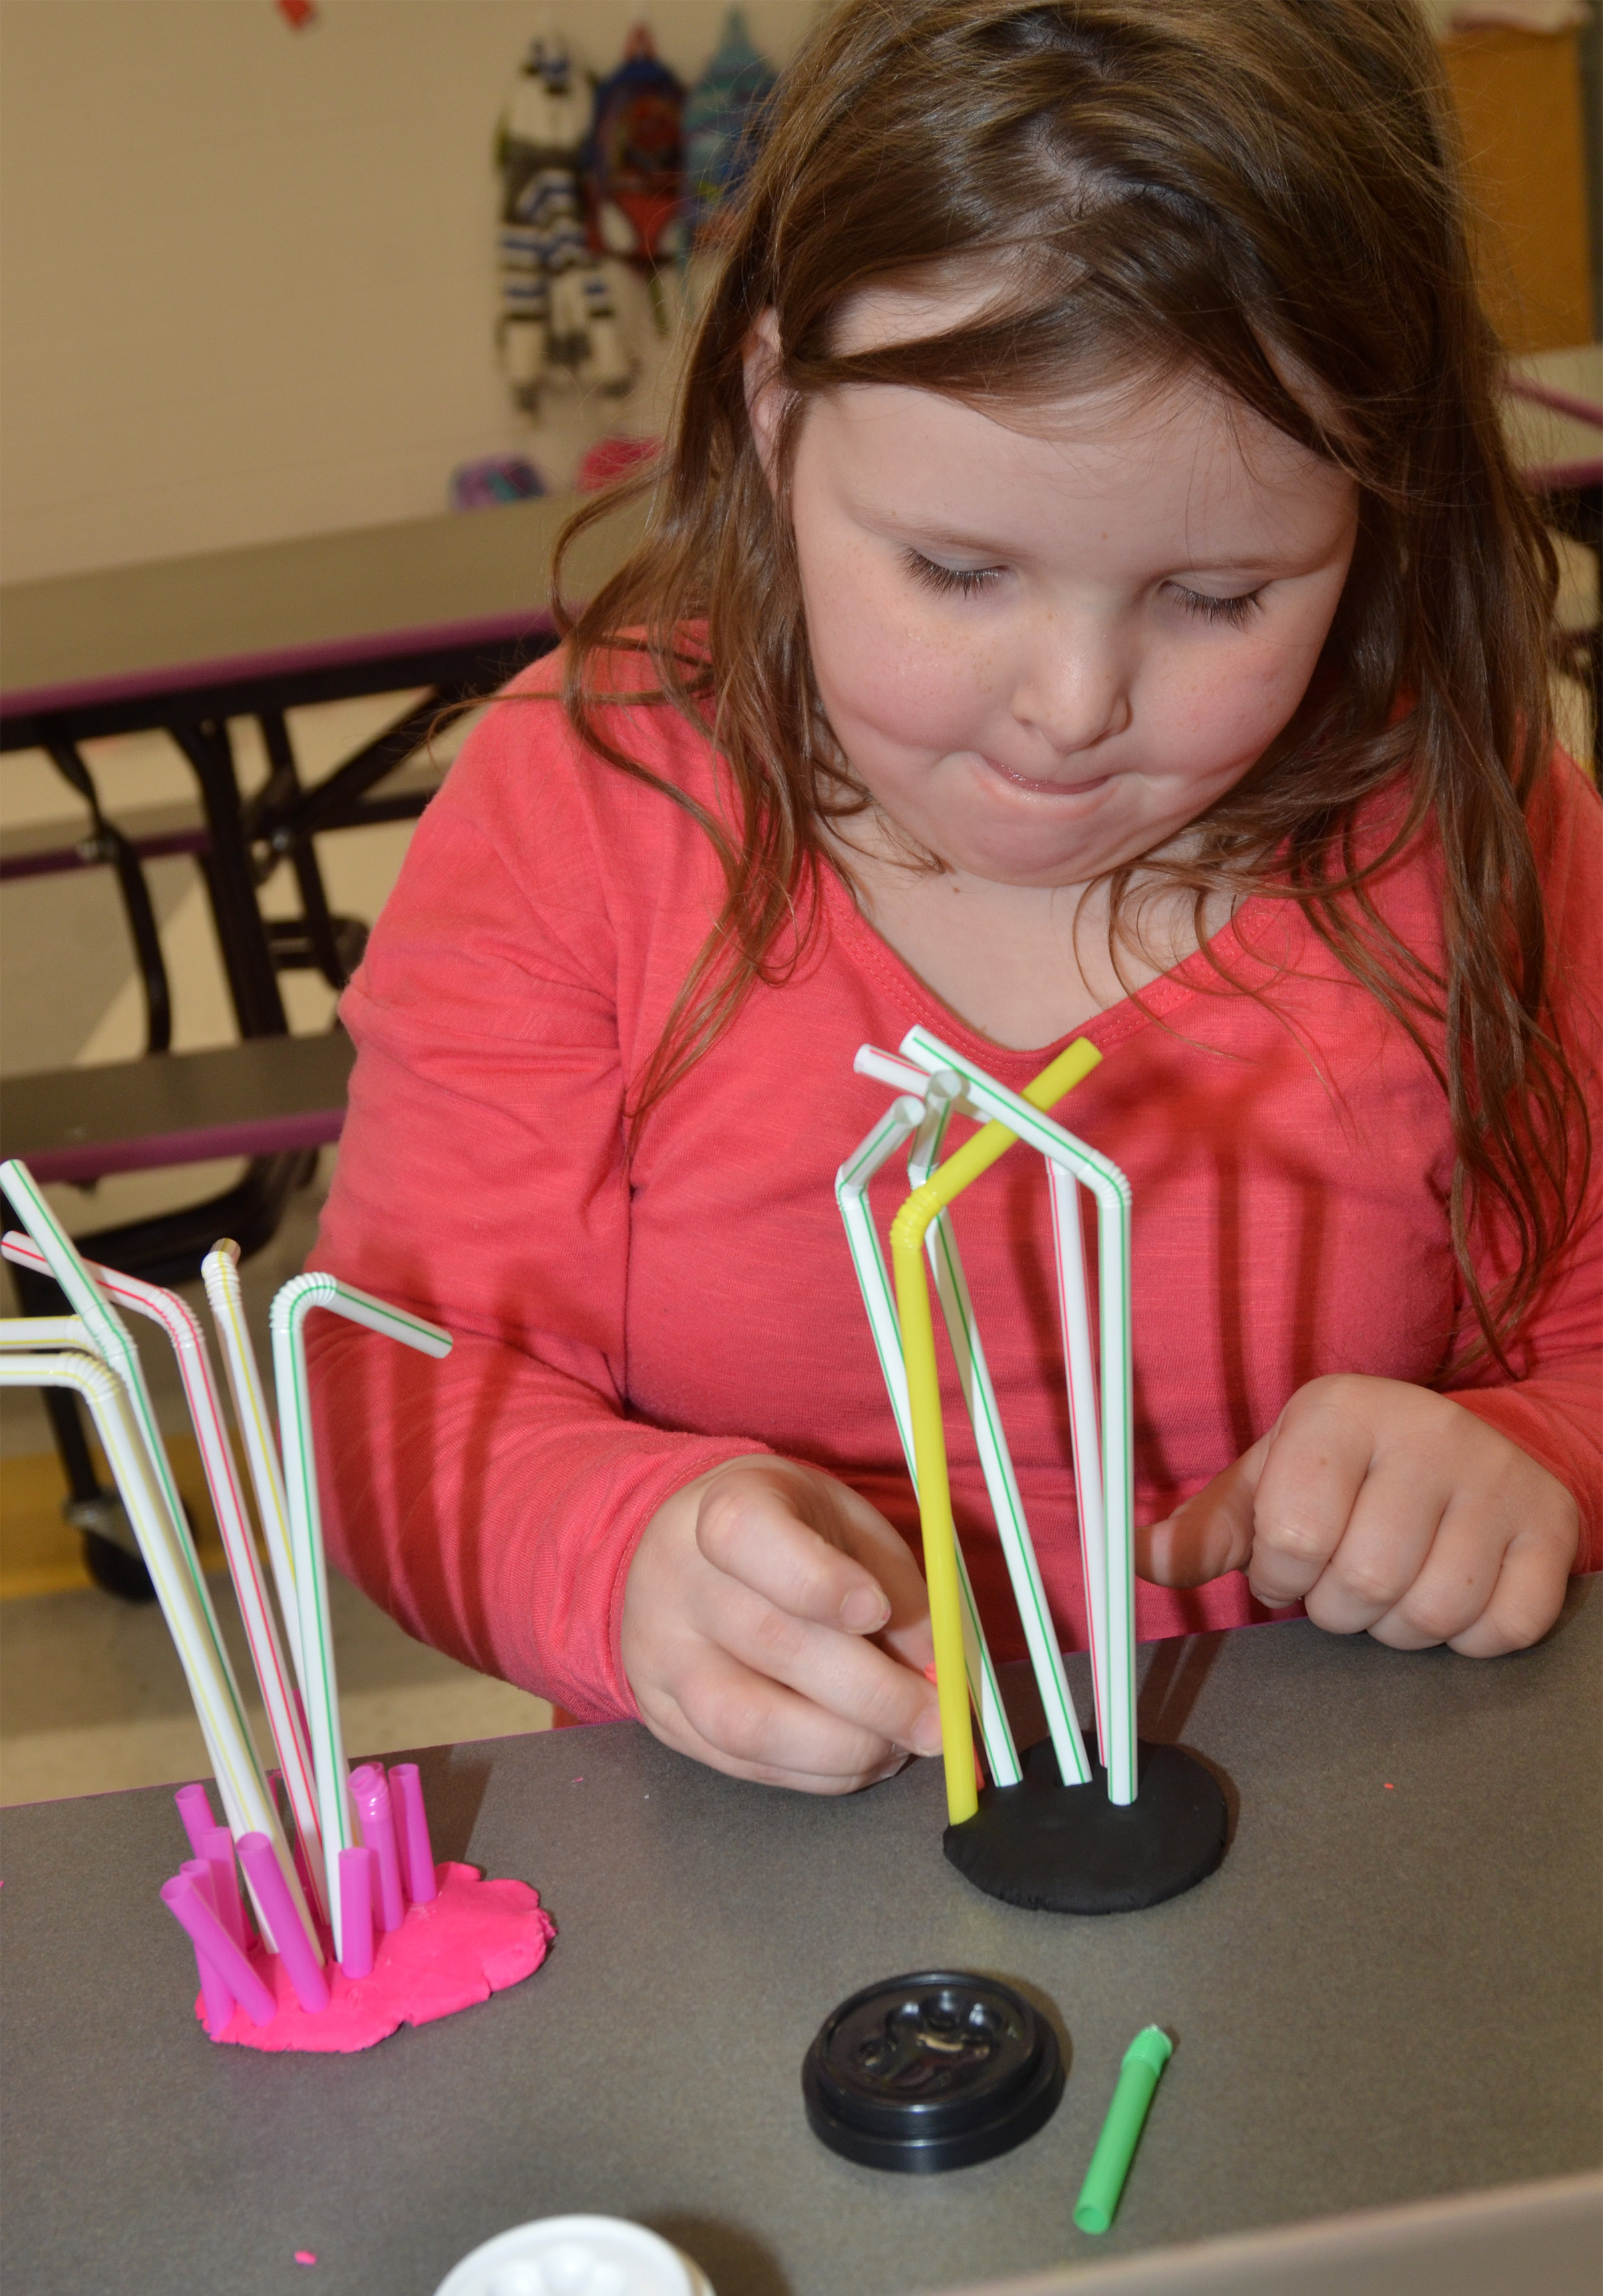 CES first-grader Kierra Maupin makes a sculpture out of Play-Doh and straws.